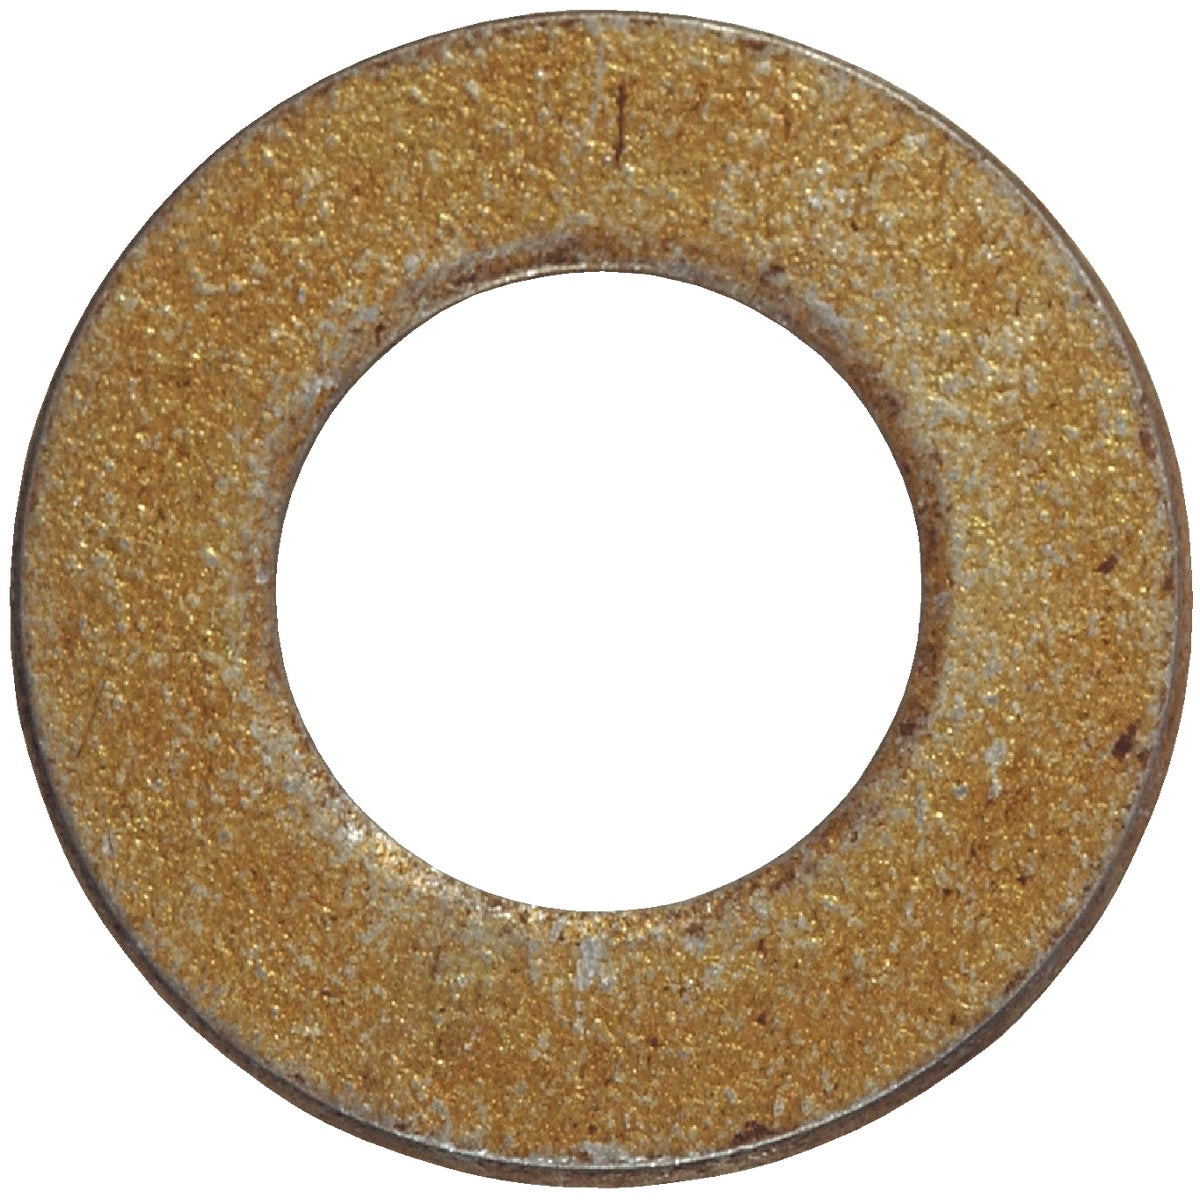 "7/16"" SAE FLAT WASHER"